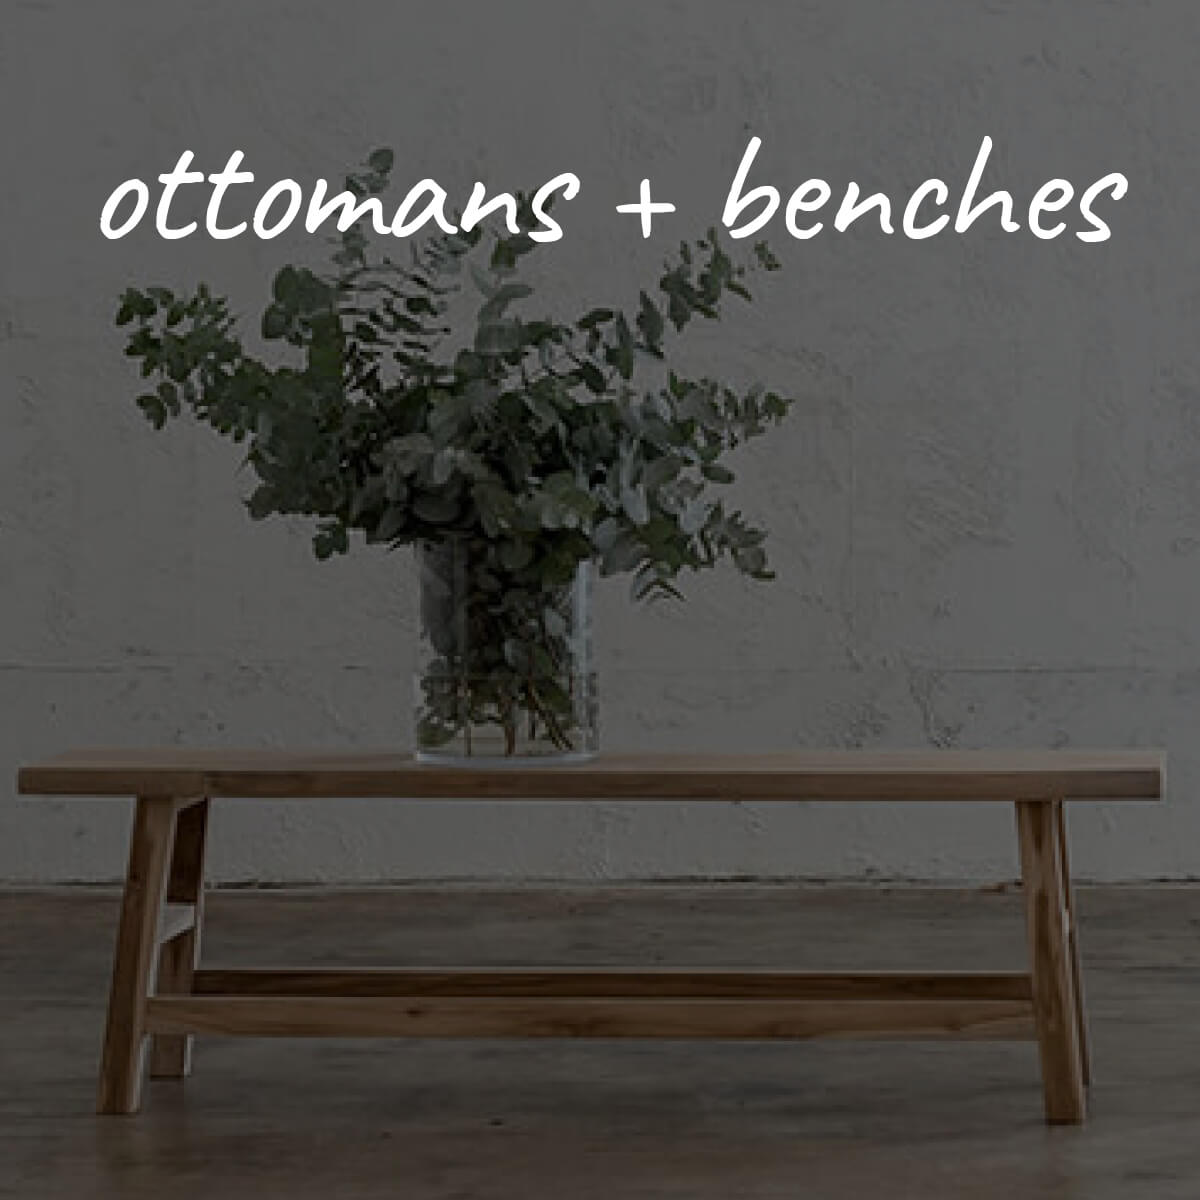 BENCH SEATS  |  OTTOMANS  |  STOOLS